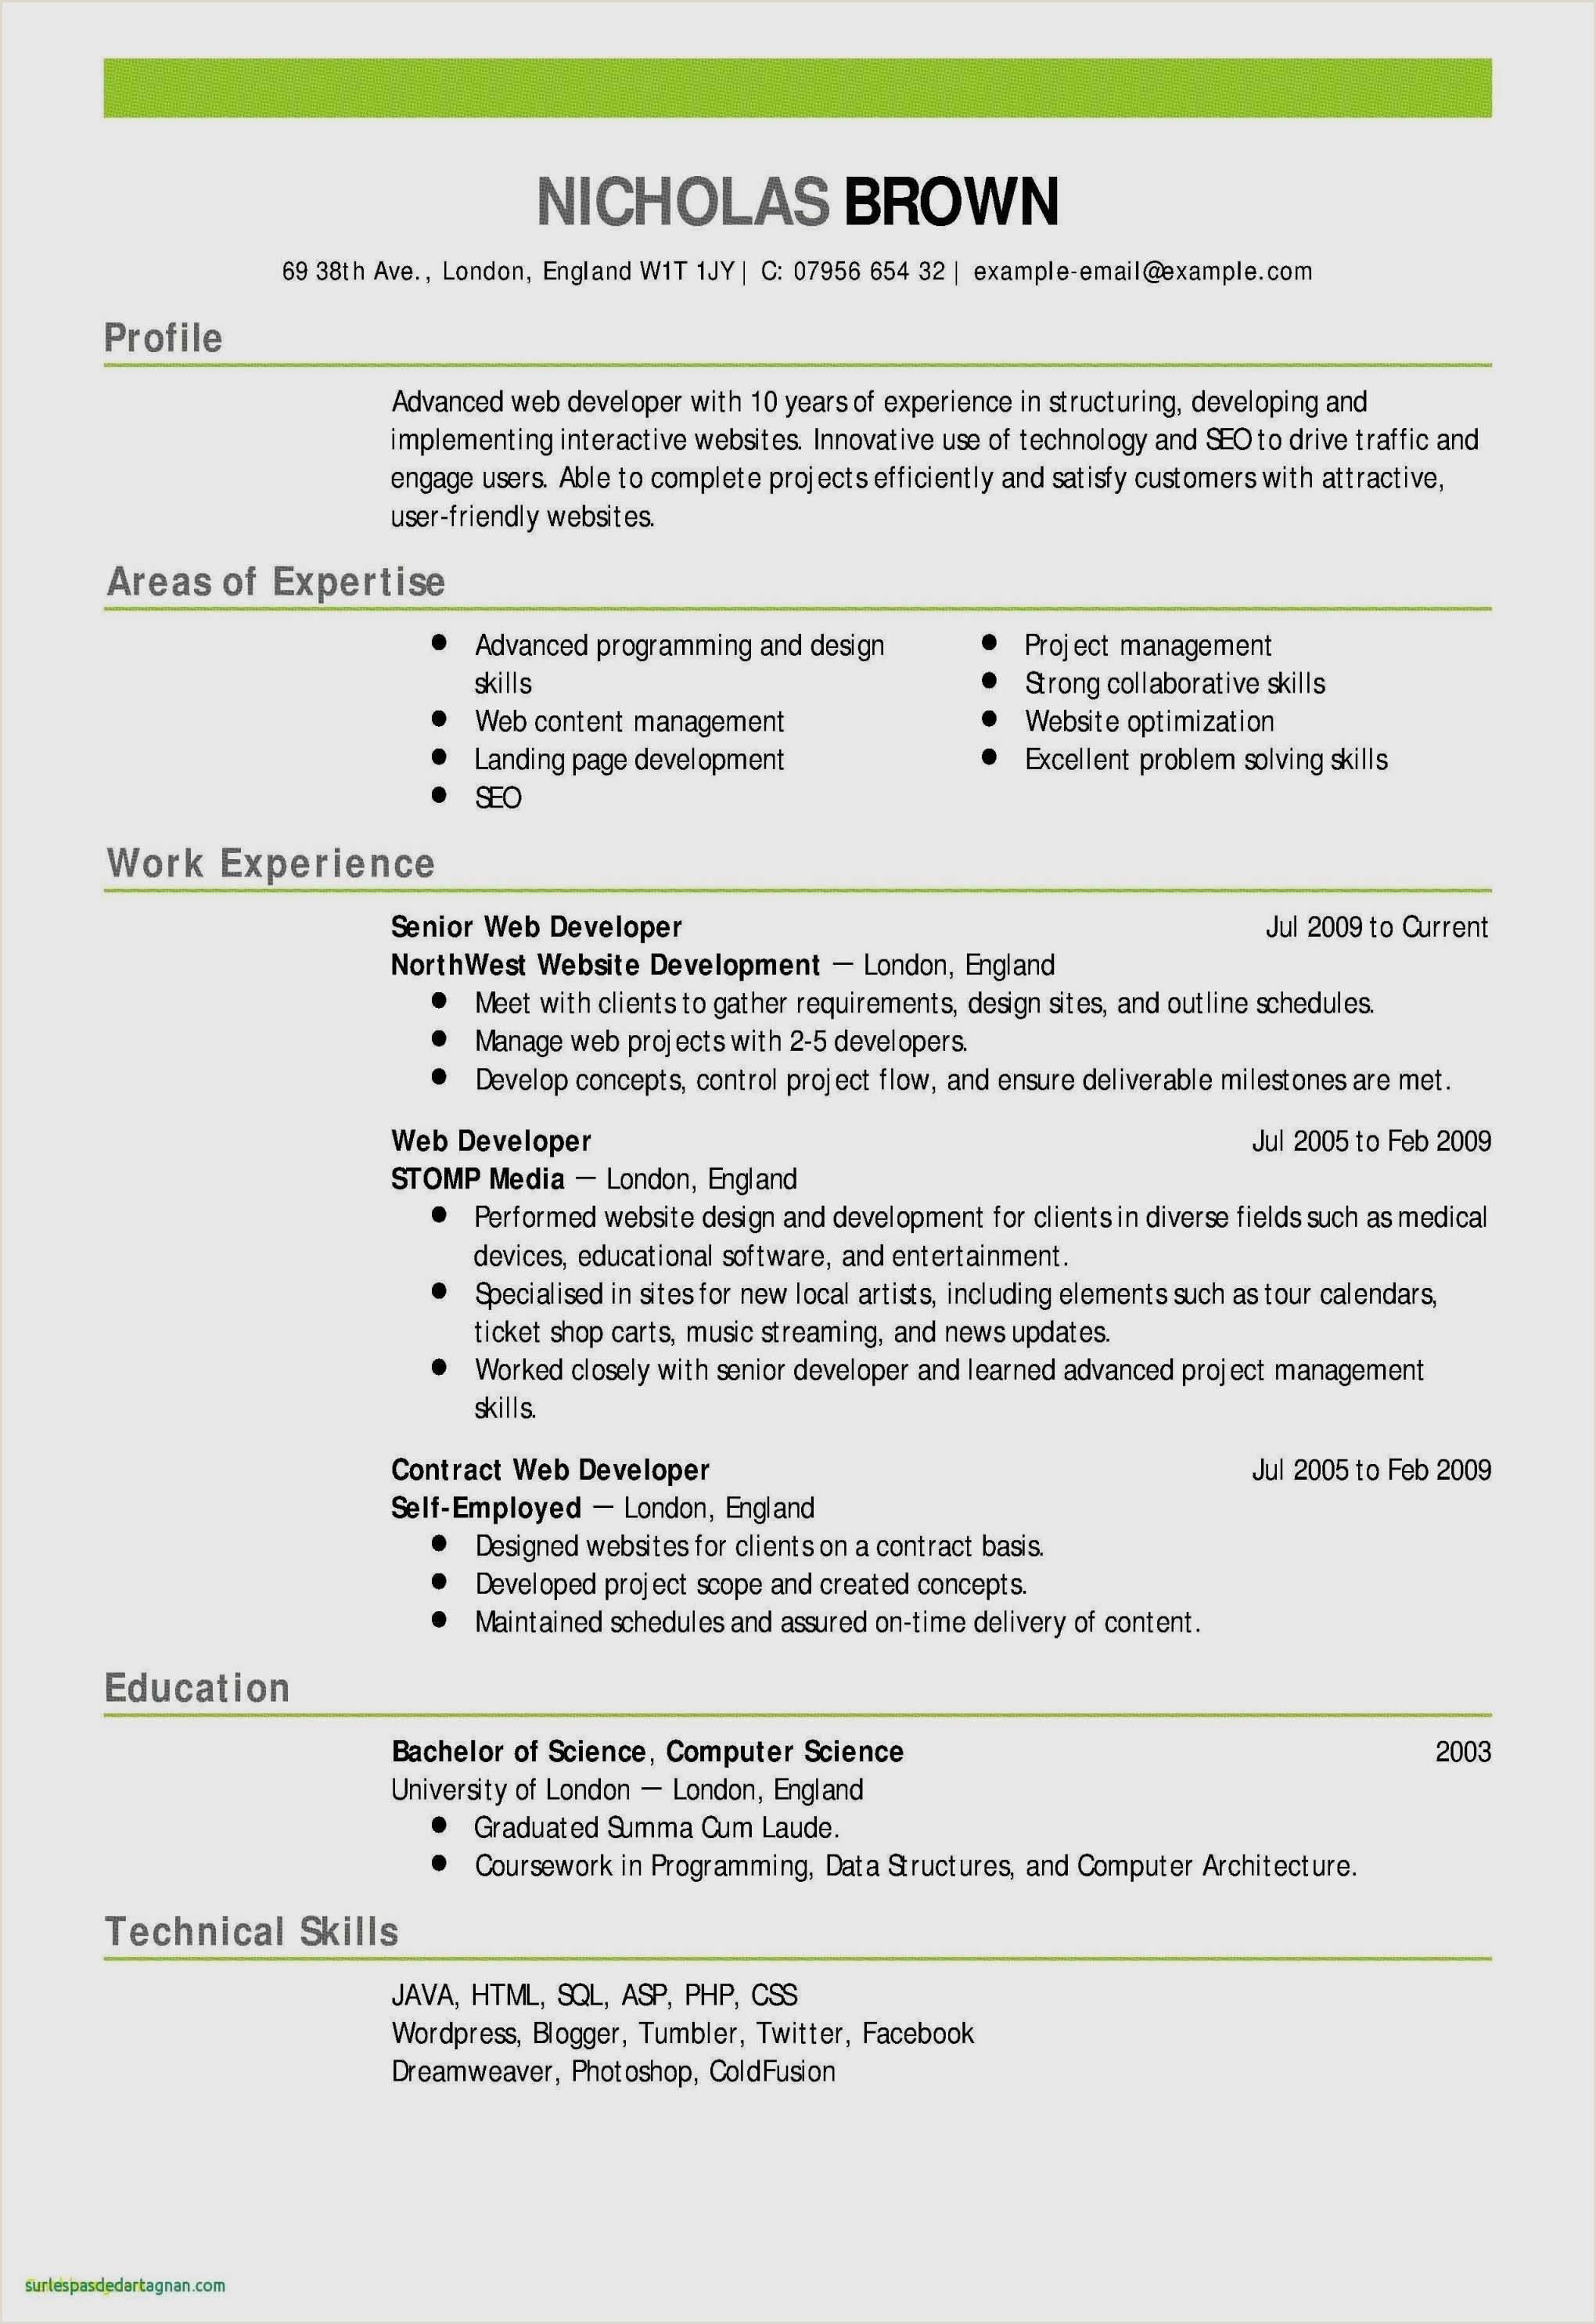 Resume format for Hotel Job Elegant Hotel Job Resume format